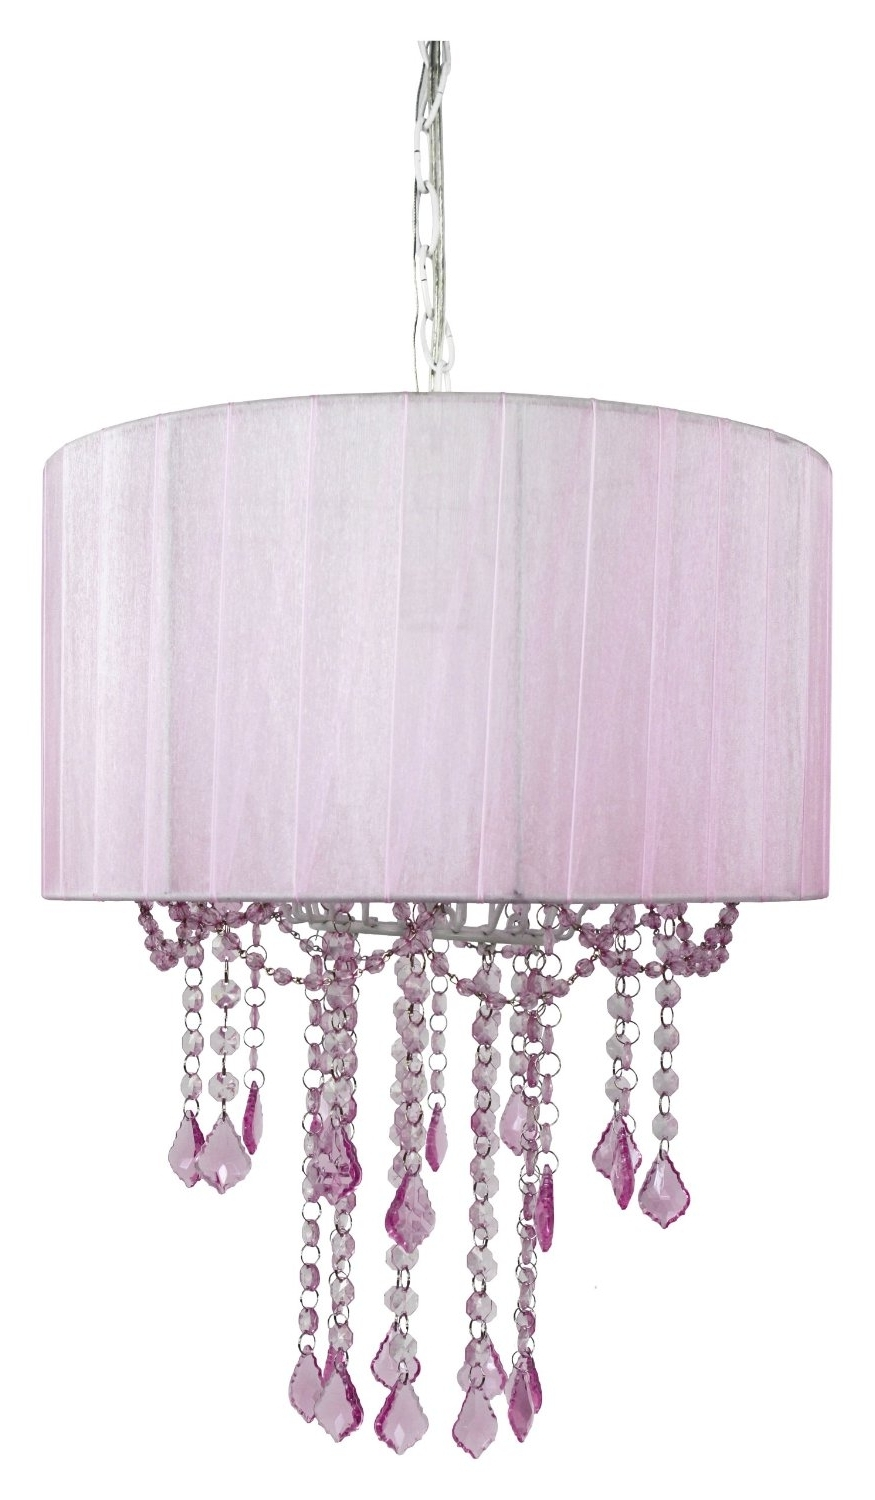 Design Trends With Regard To Chandelier Light Shades (View 9 of 20)